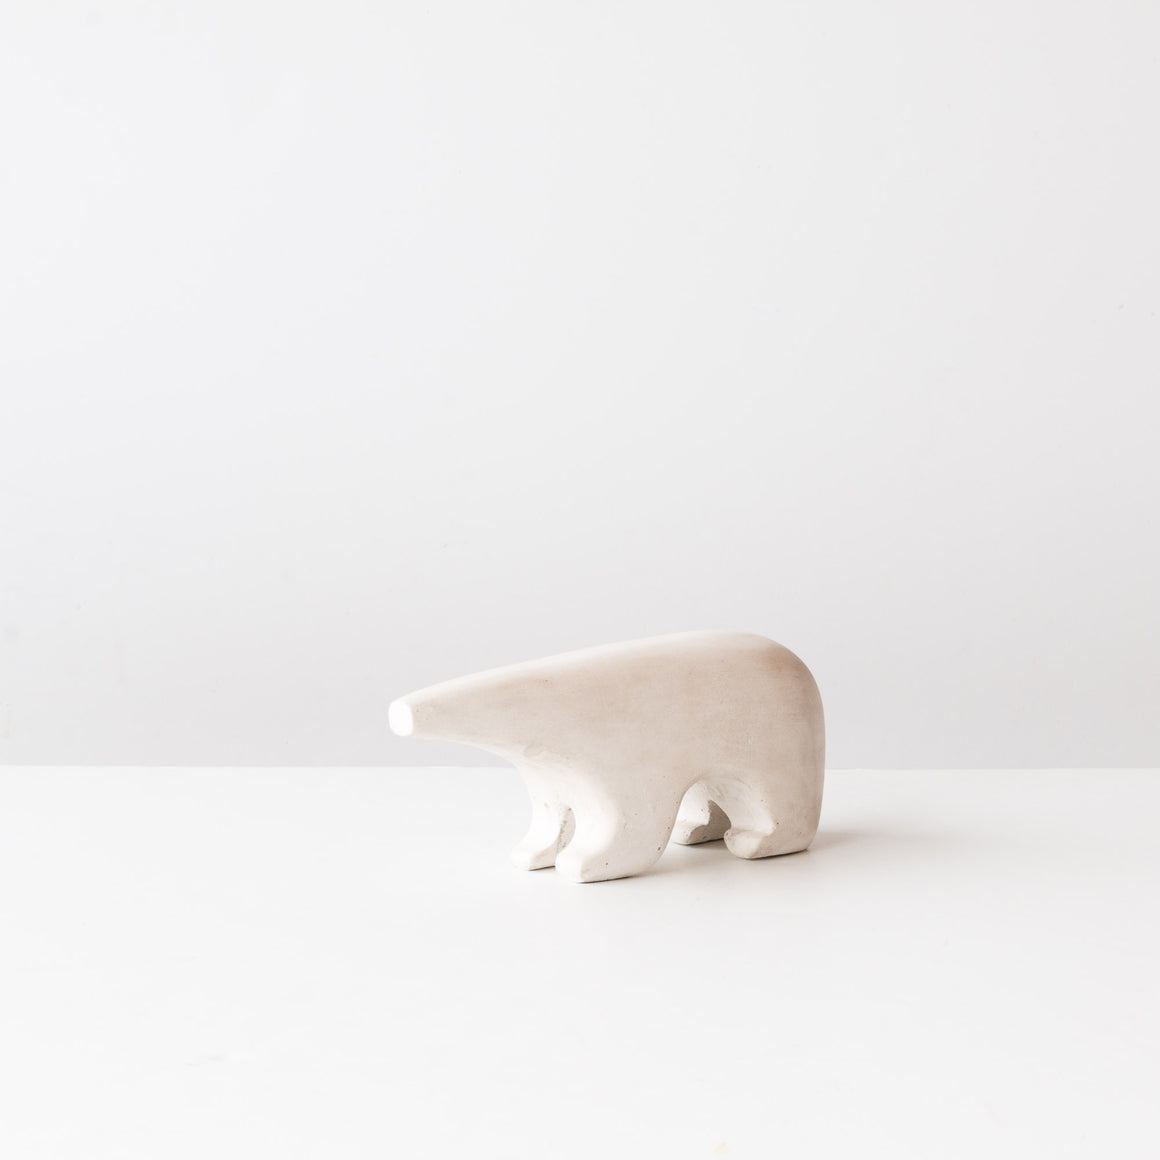 Two Bears - Bookend / Sculpture - Sold by Chic & Basta